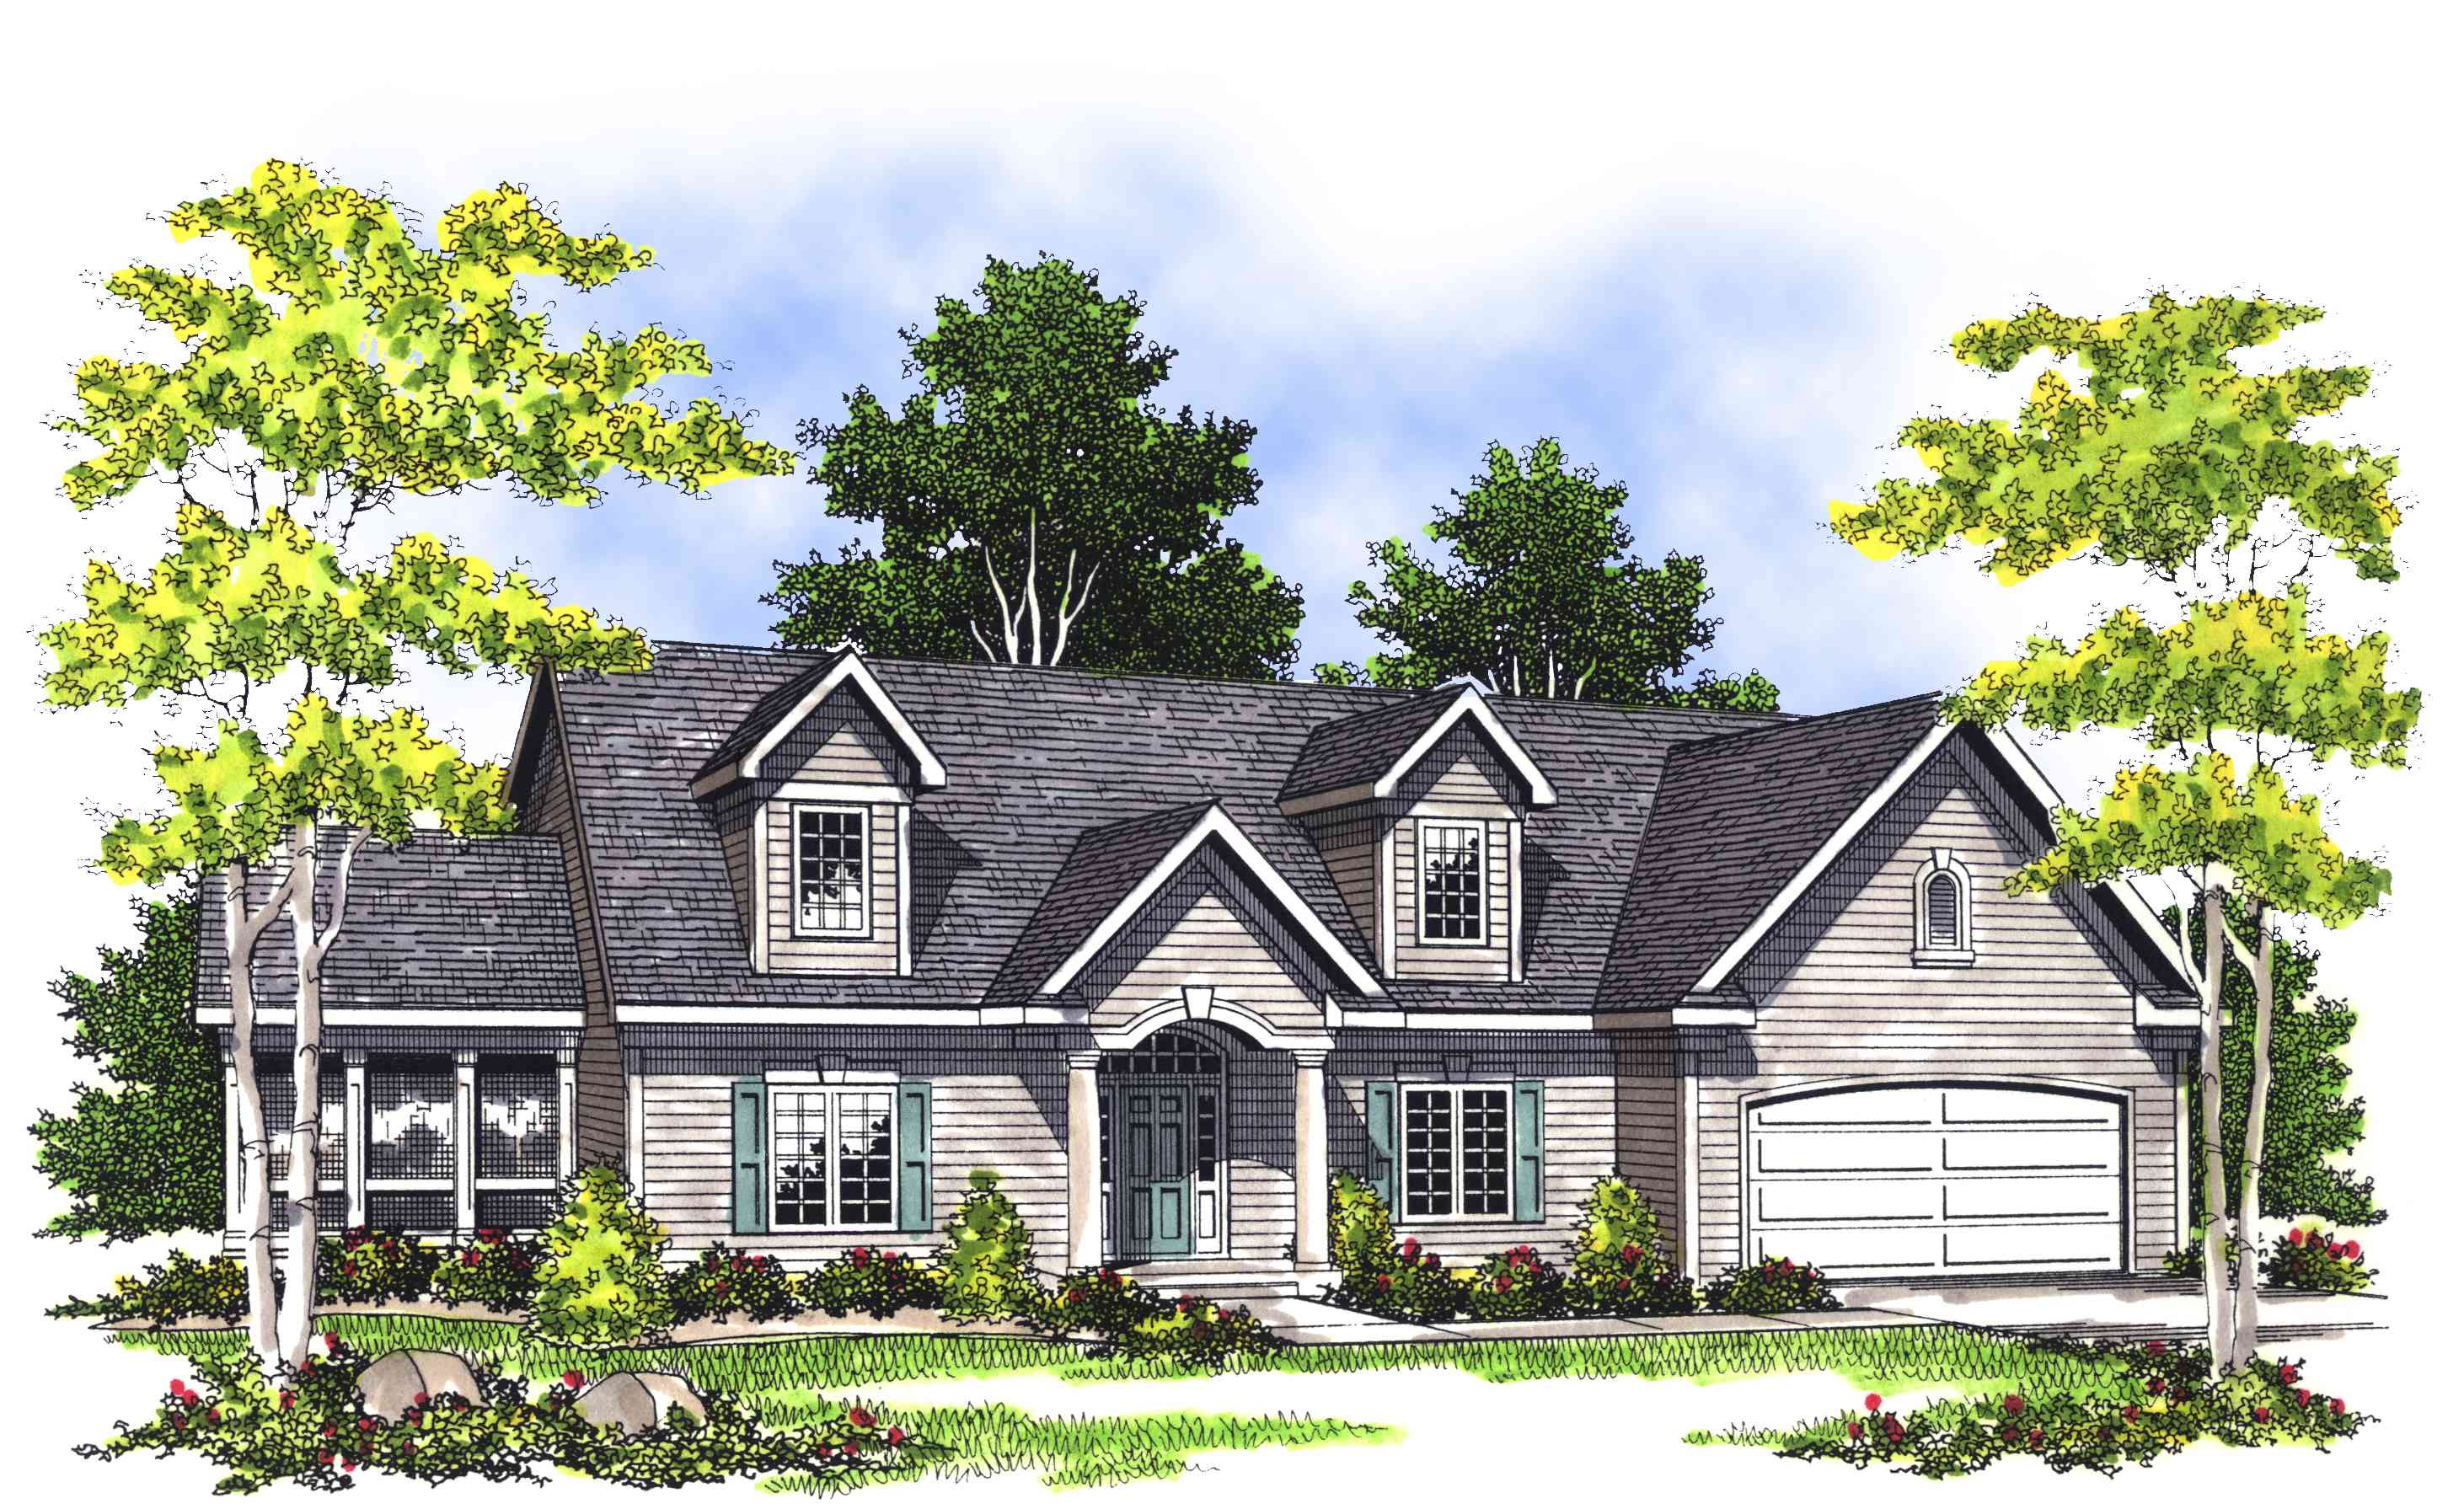 Two Story Foyer House Plans : Bright two story foyer ah architectural designs